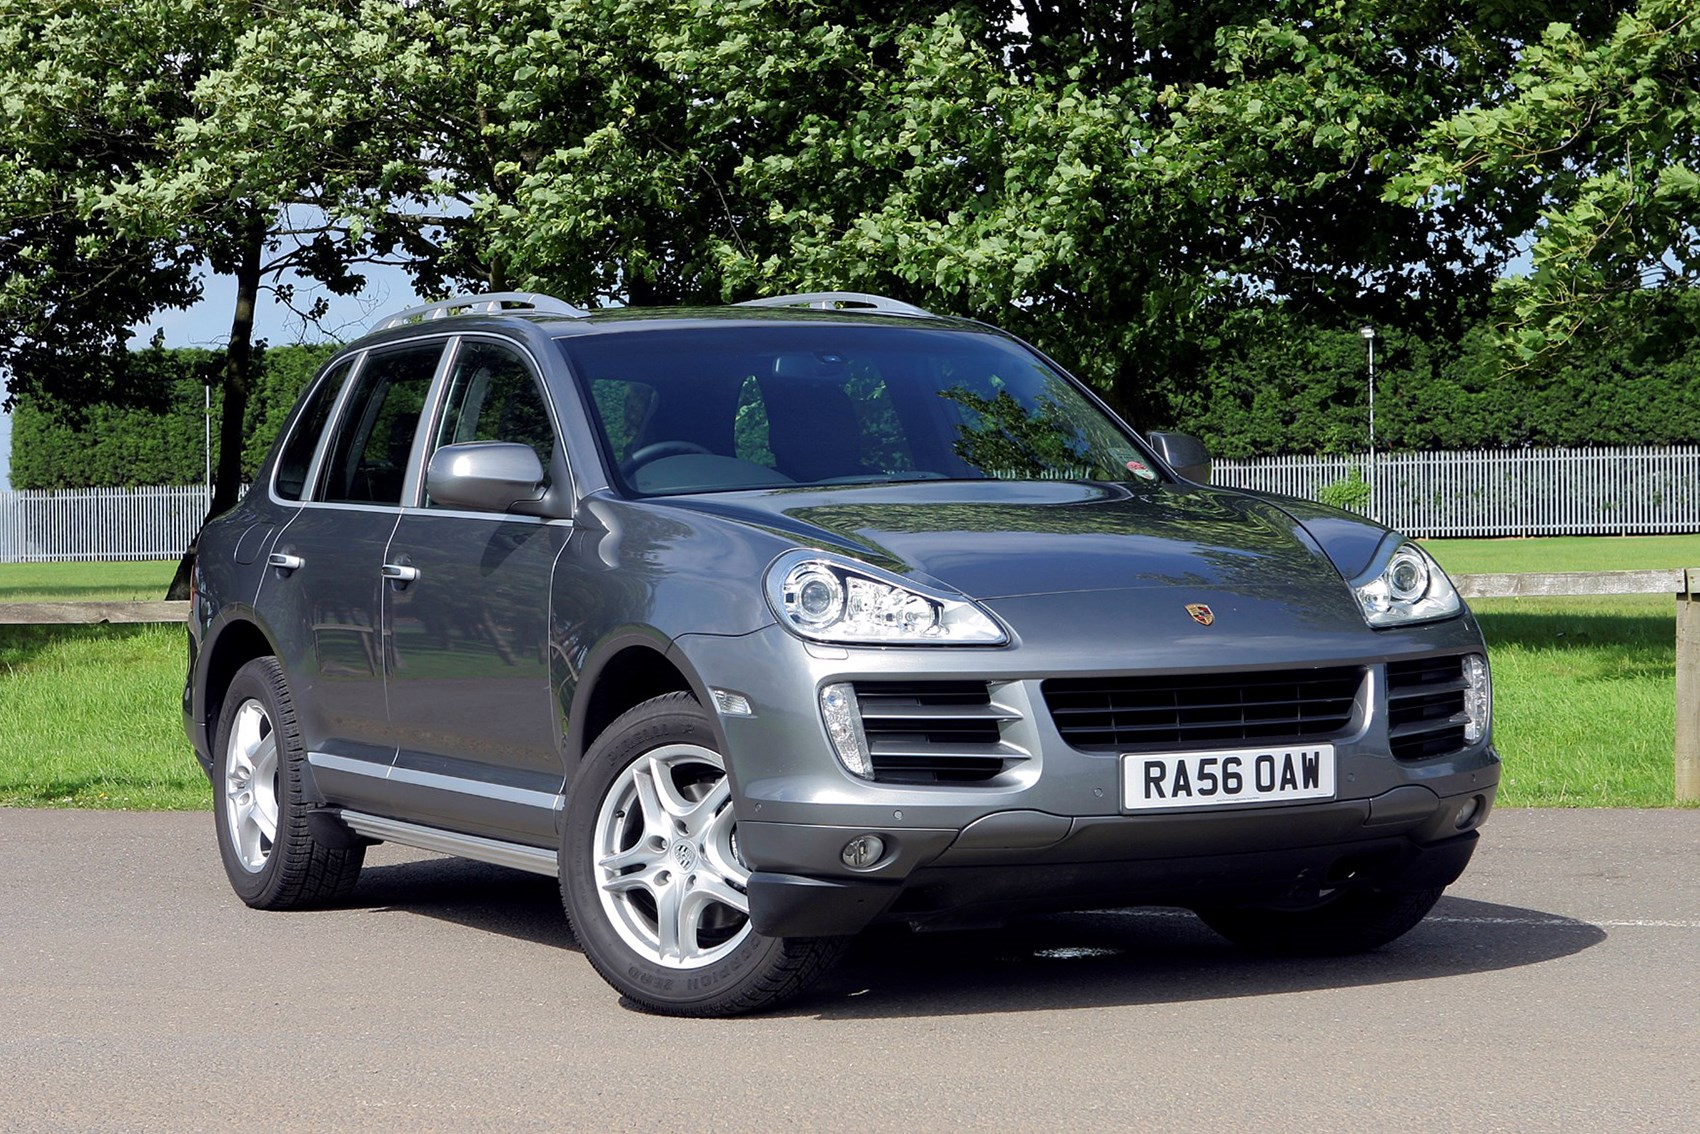 Porsche Cayenne - luxury cars for less than £10k